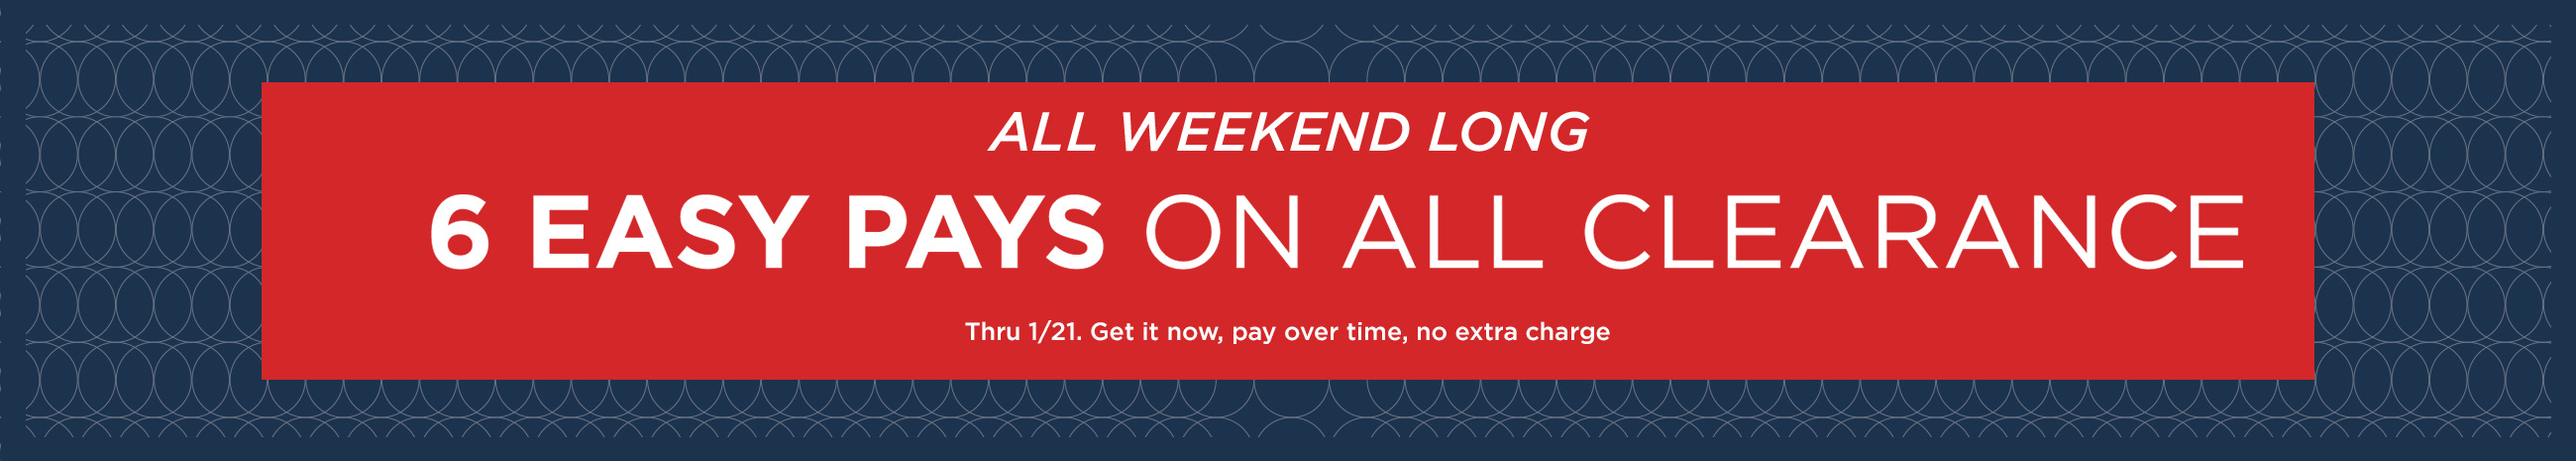 All Weekend Long — 6 Easy Pays on ALL Clearance Thru 1/21. Get it now, pay over time, no extra charge